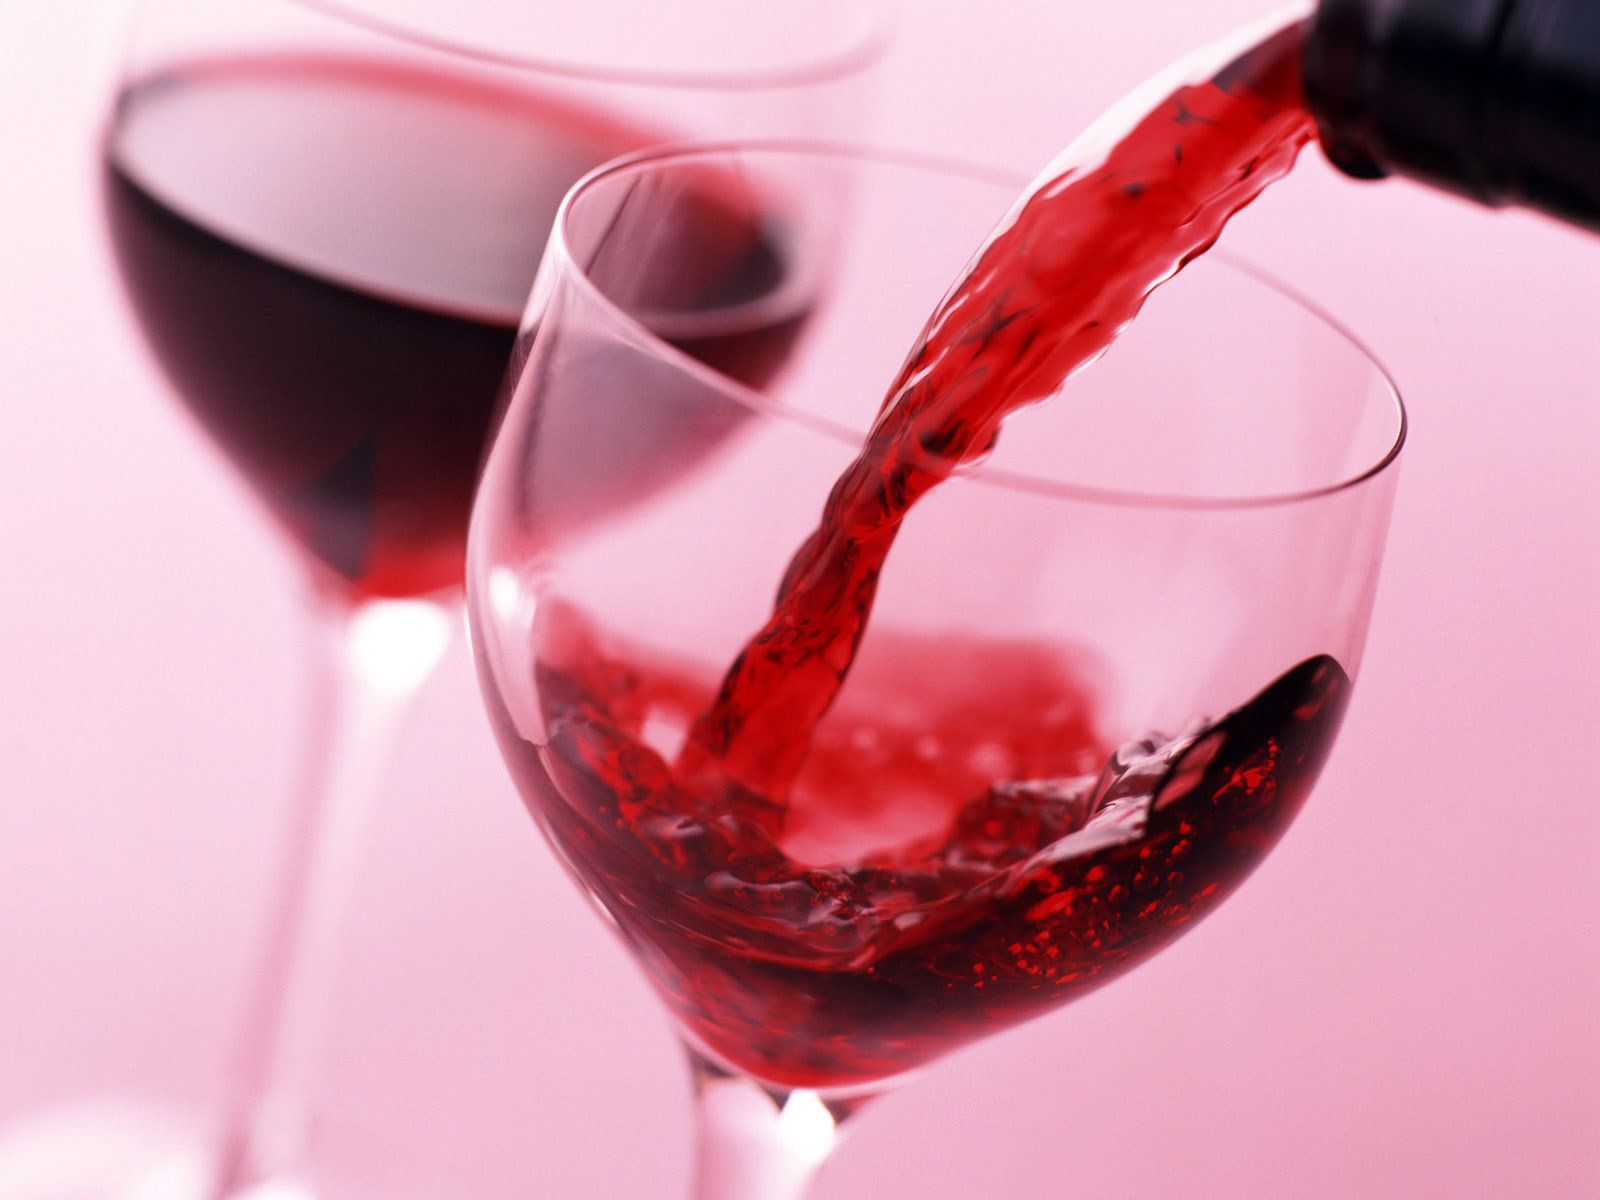 Red Pictures Google Search Red Wine Red Wine Benefits Red Wine Glasses